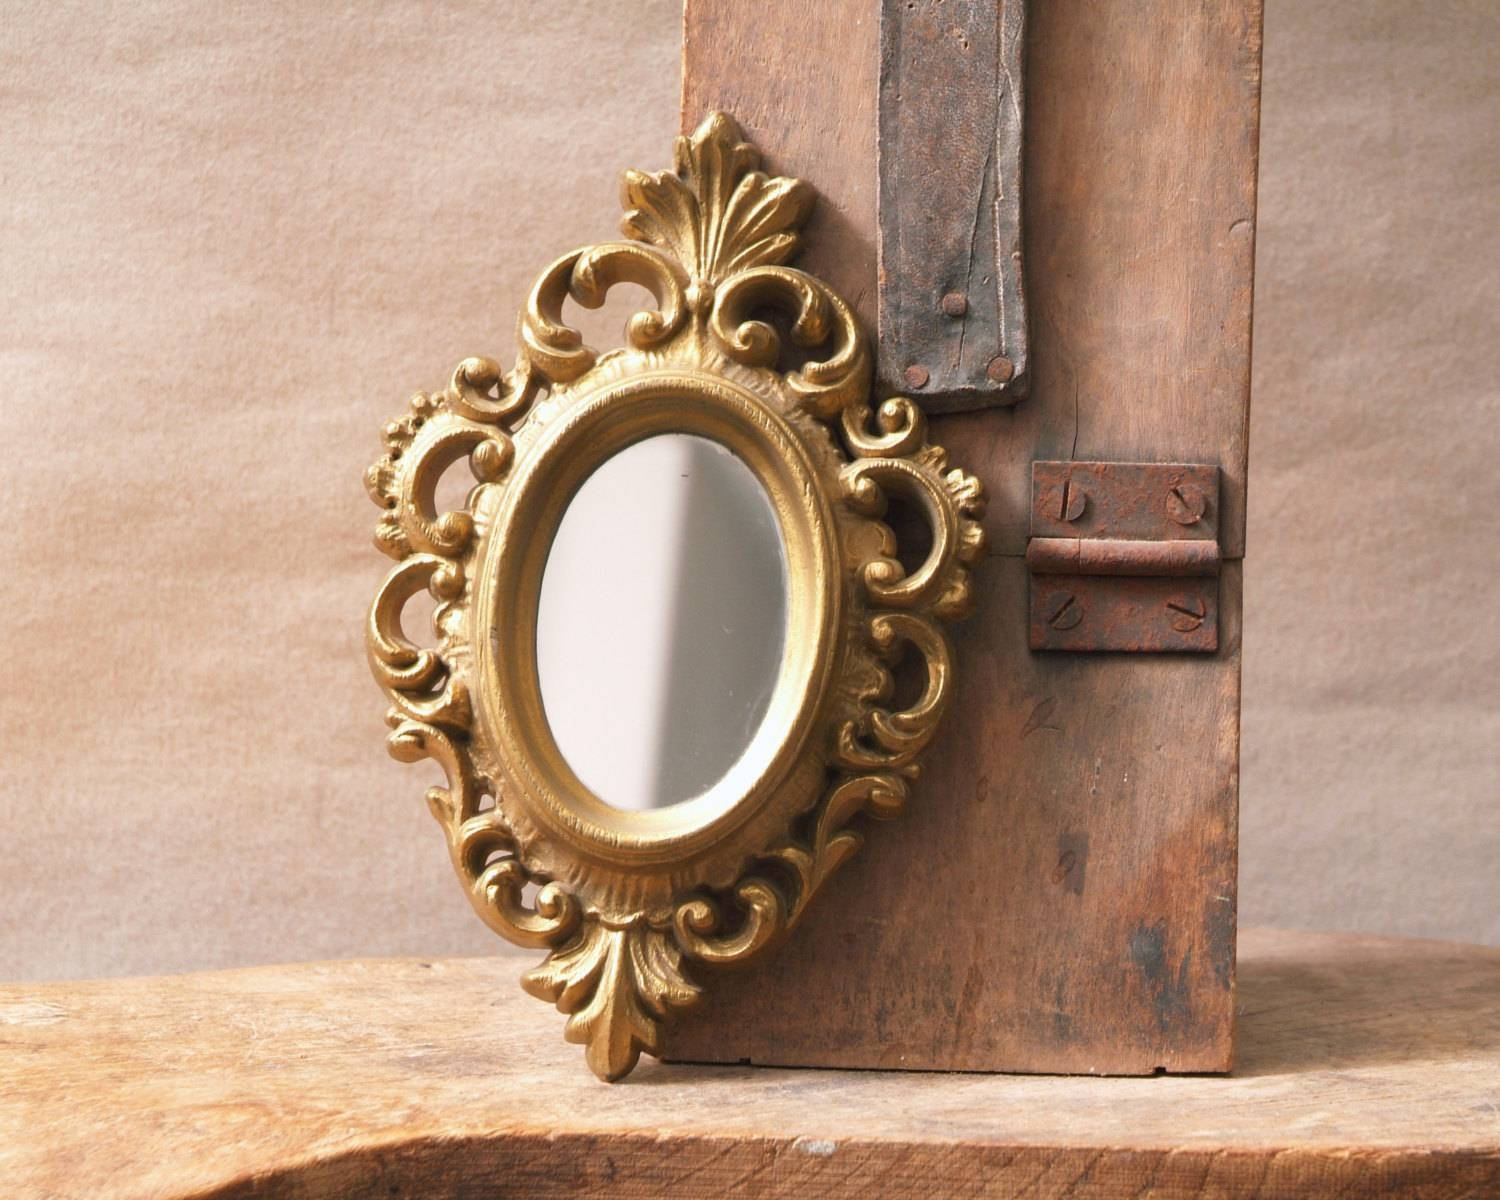 Vintage Gold Framed Mirror Small Oval Mirror Ornate Gold for Gold Ornate Mirrors (Image 23 of 25)